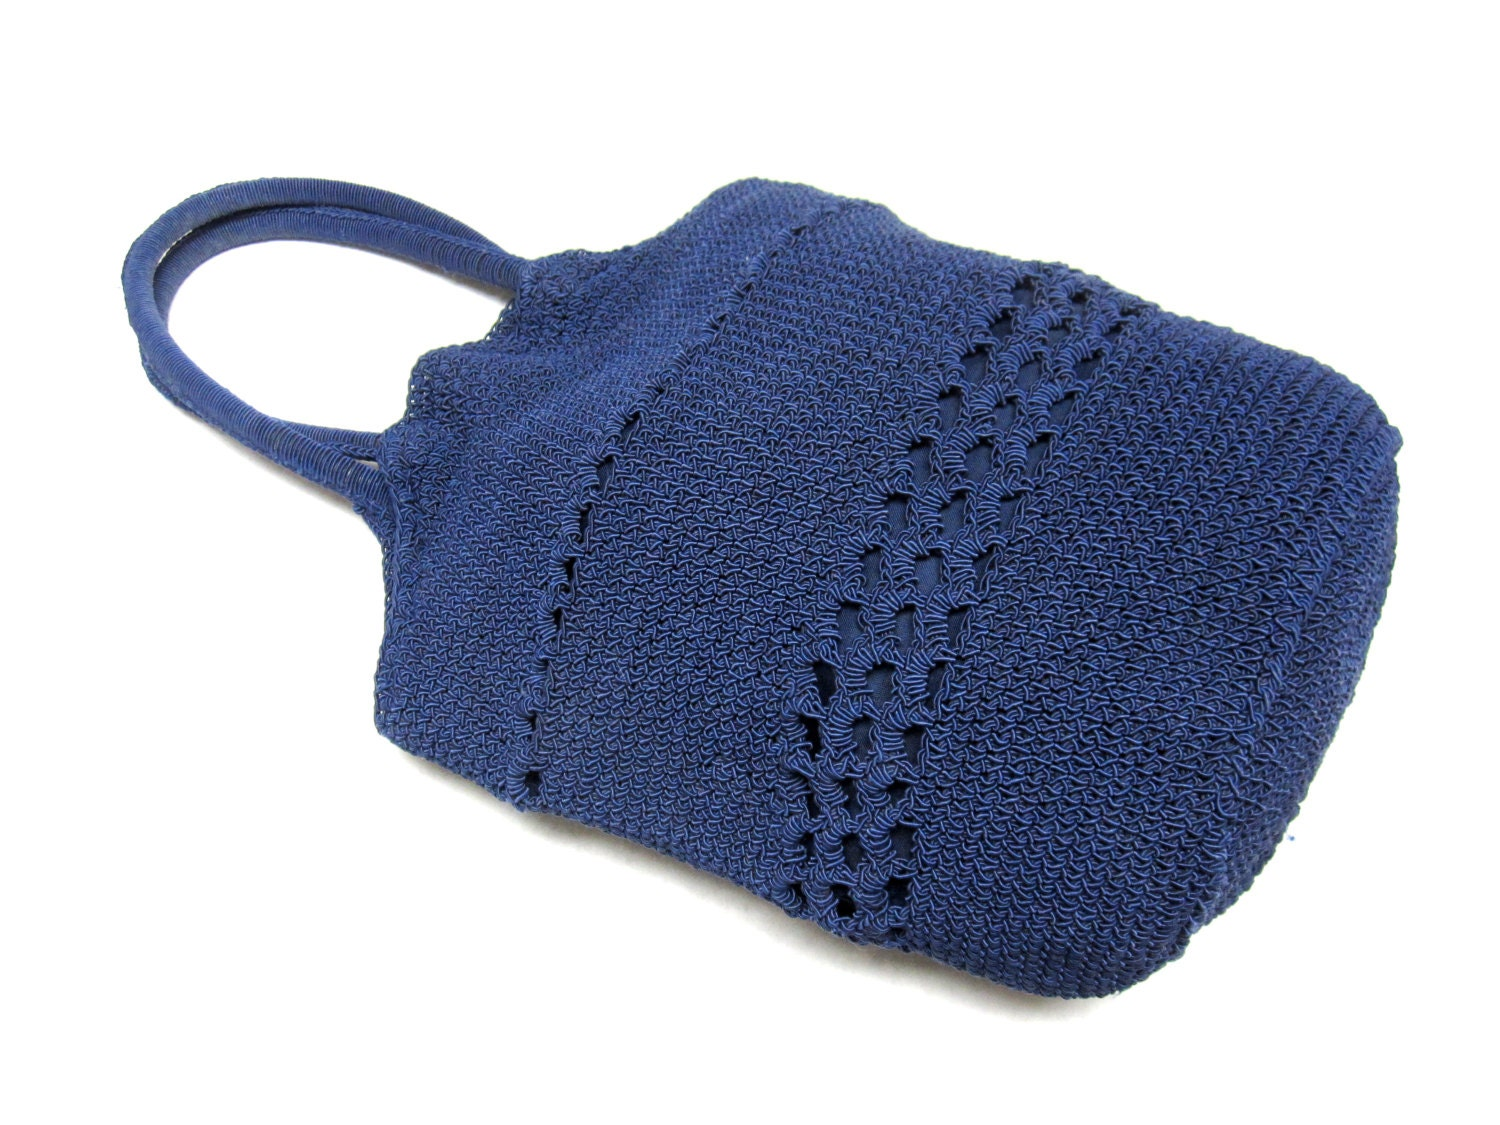 Hobo Bag Crochet : Blue Purse Crochet Hobo Bucket Handbag by sweetie2sweetie on Etsy